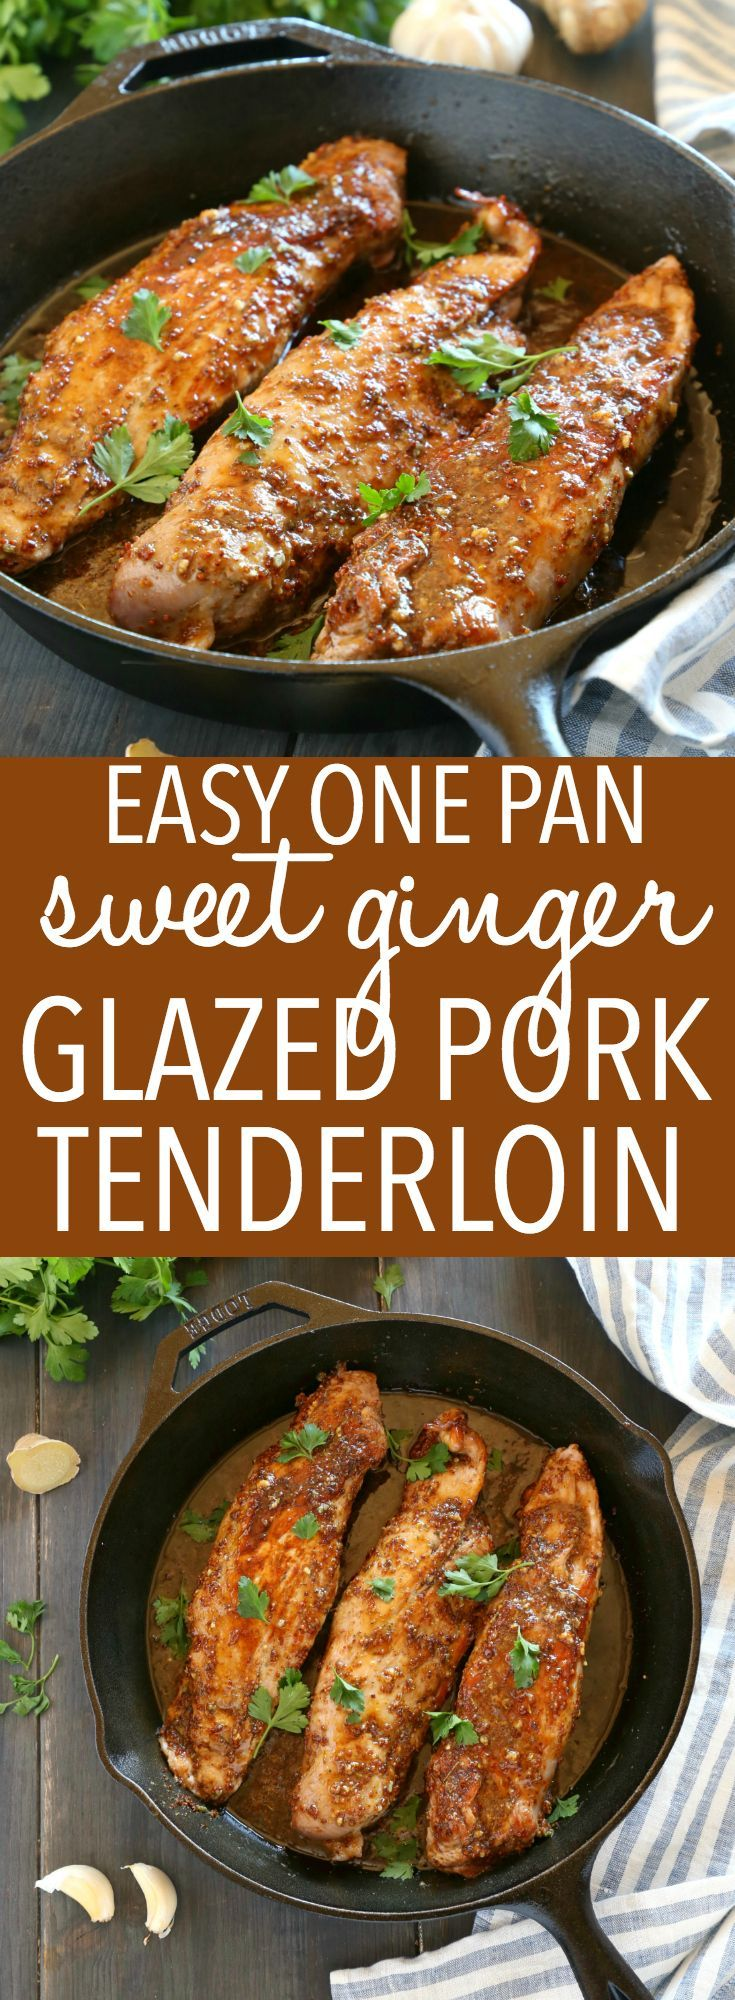 This Easy One Pan Sweet Ginger Glazed Pork Tenderloin is perfectly tender and juicy, cooked to perfection with a sweet ginger glaze! Made from basic ingredients you probably already have in your kitchen, this will quickly become one of your favourite ways to enjoy pork! Recipe from thebusybaker.ca! #easyporktenderloin #asianpork #gingerglazedpork via @busybakerblog